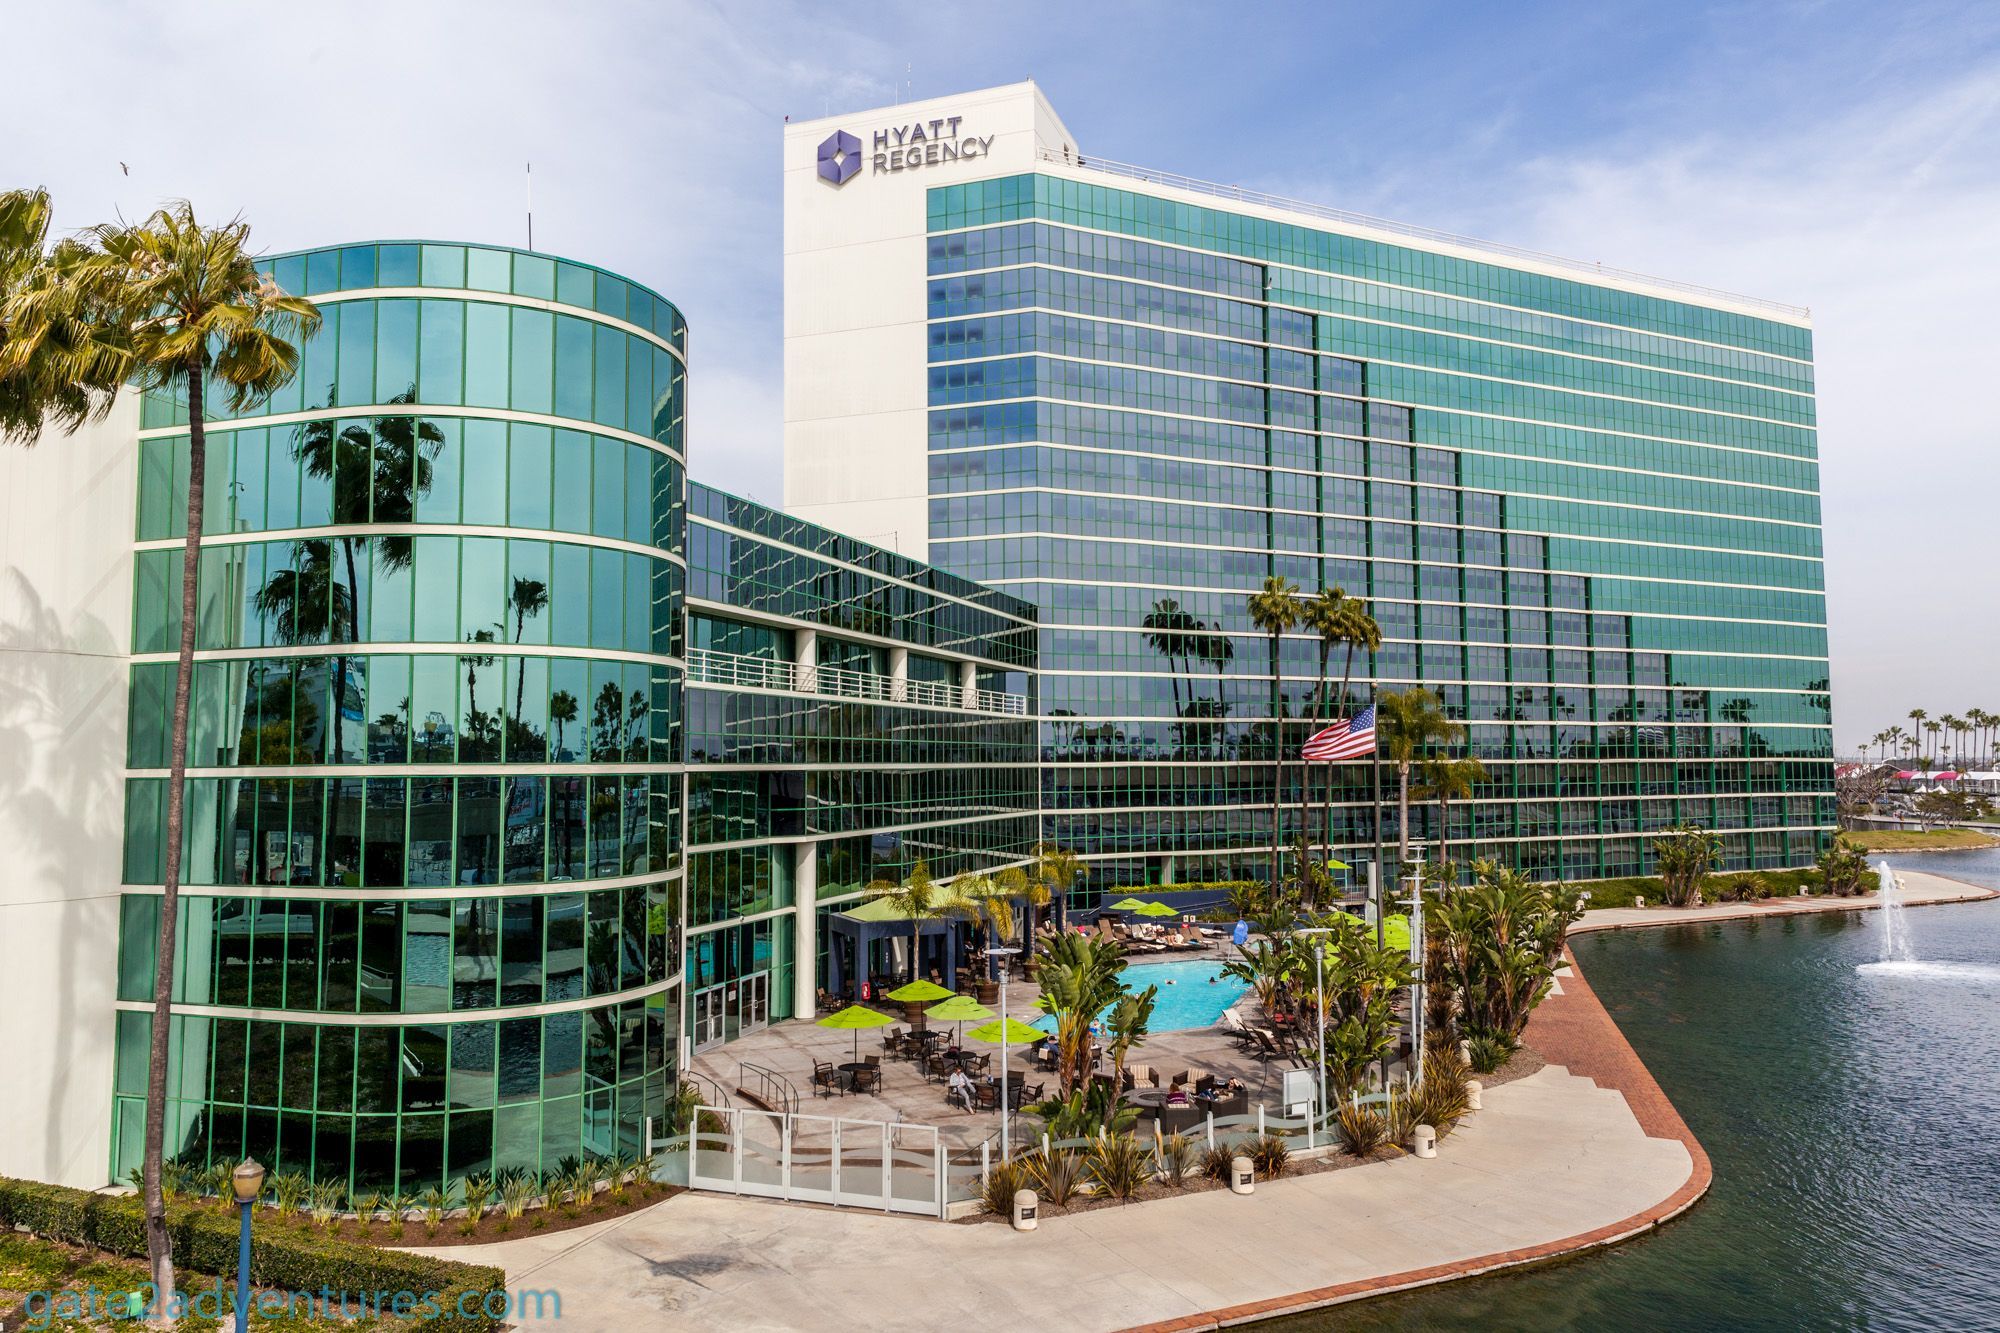 Hotel Review: Hyatt Regency Long Beach, California